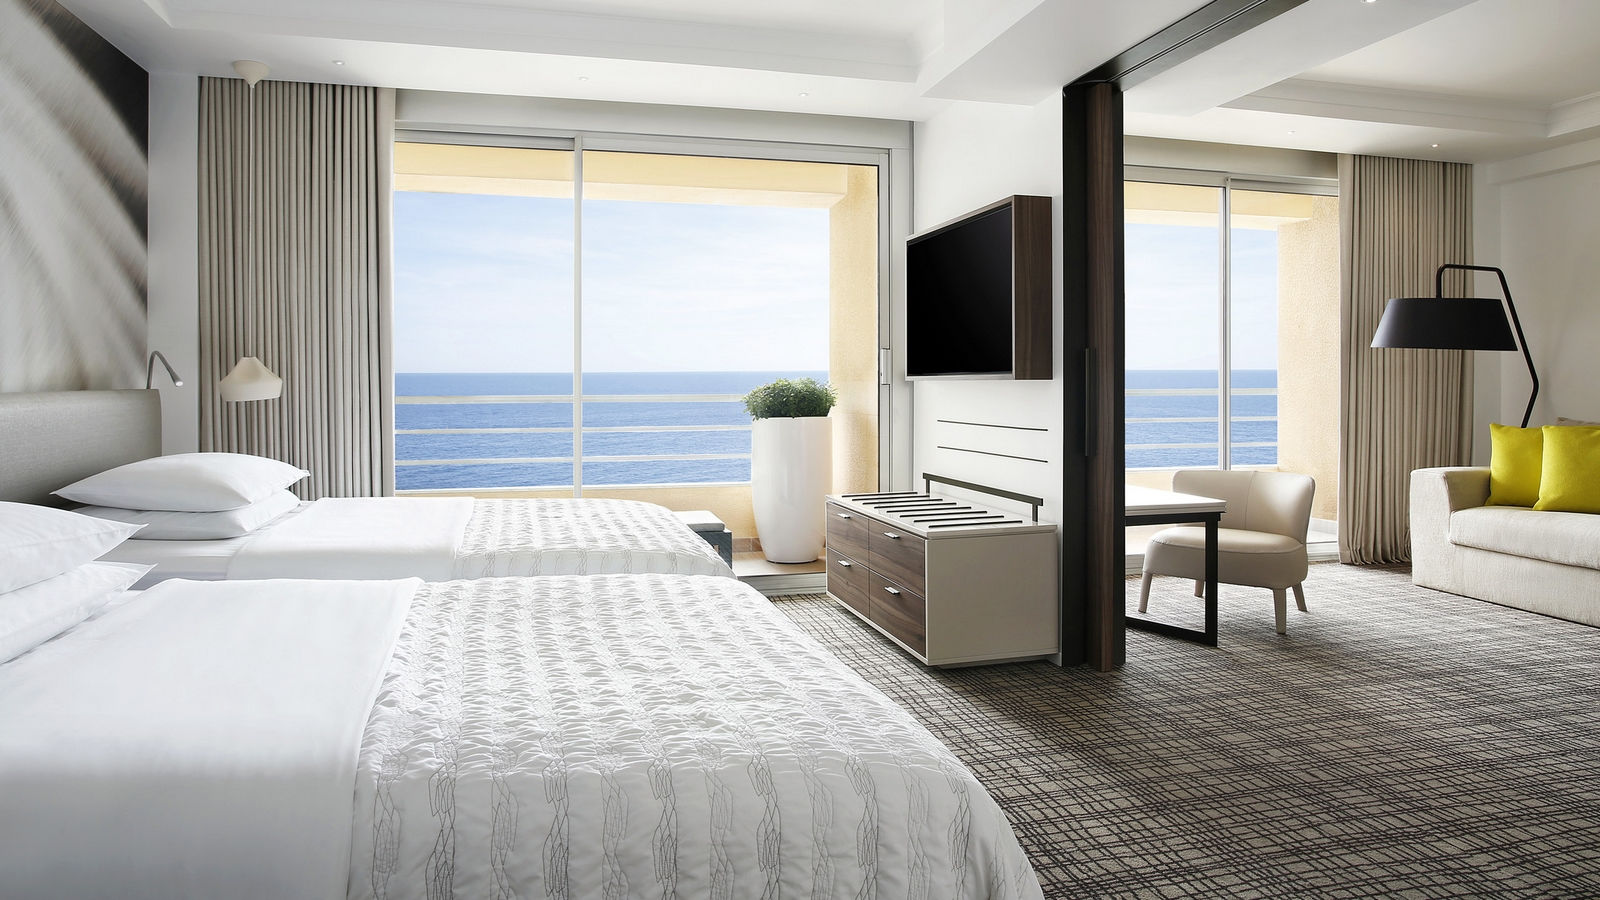 Spacious Suites with two, three and four rooms in Le Meridien Beach Plaza